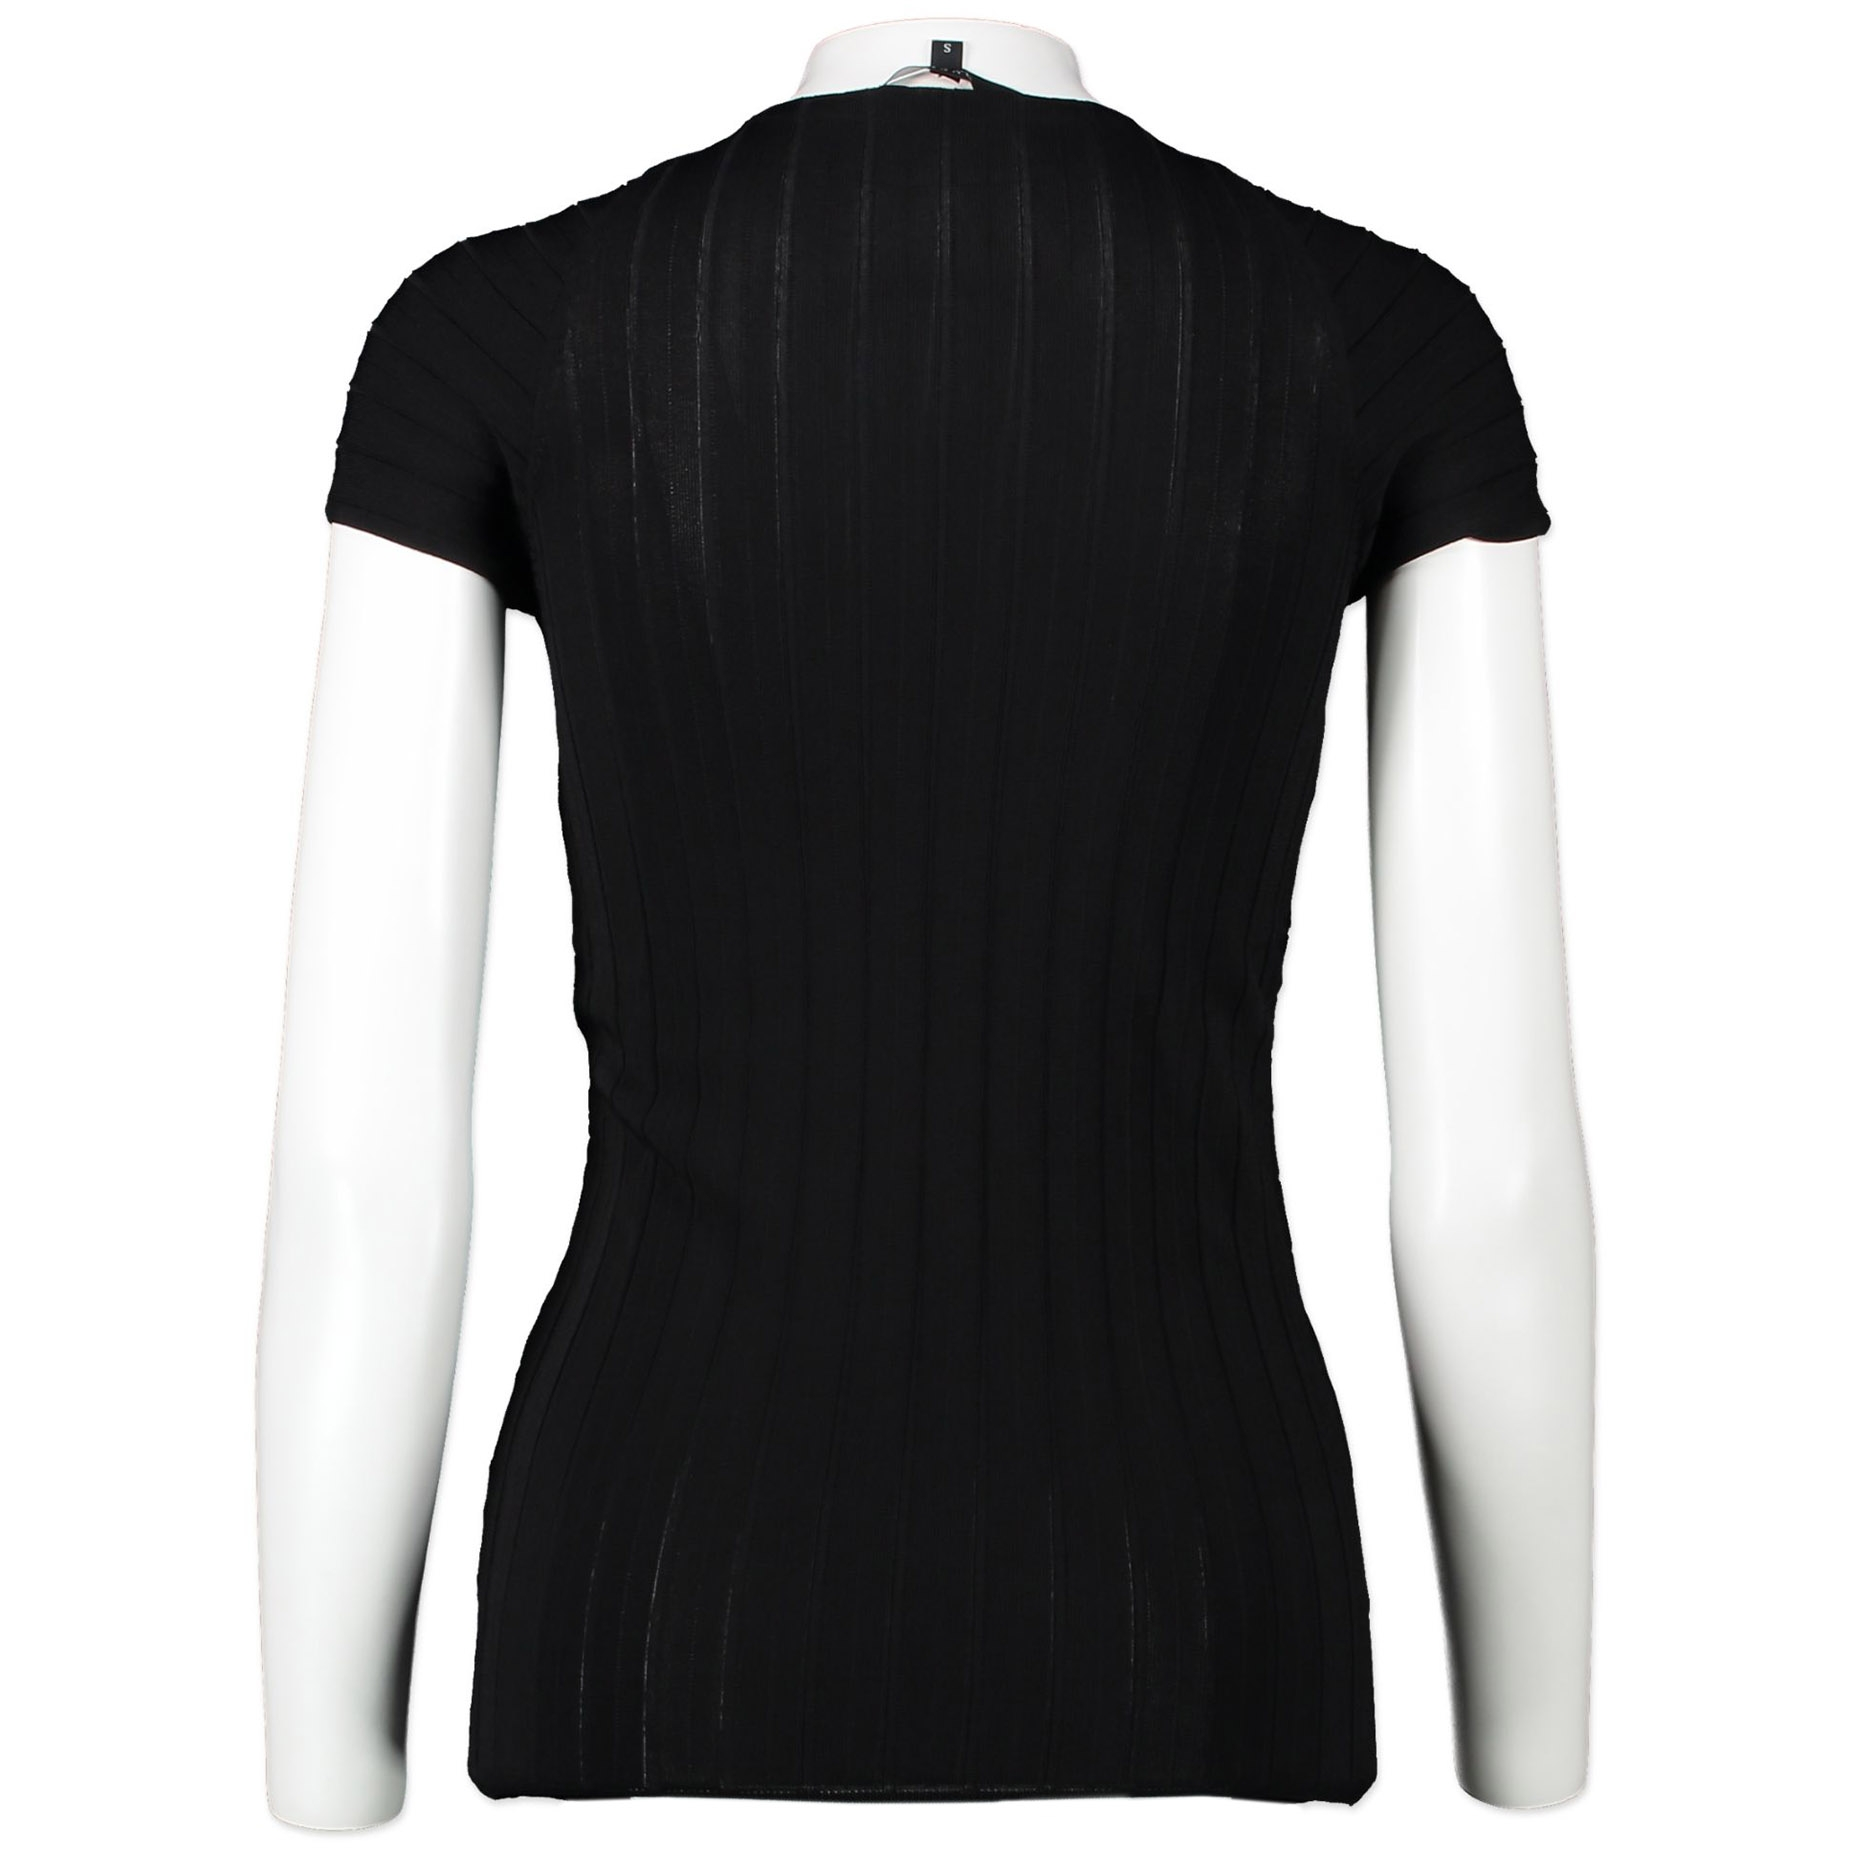 Buy this authentic second-hand vintage Gucci Black Ribbed Top at online webshop LabelLOV. Safe and secure shopping. Koop deze authentieke tweedehands vintage Gucci Black Ribbed Top bij online webshop LabelLOV.